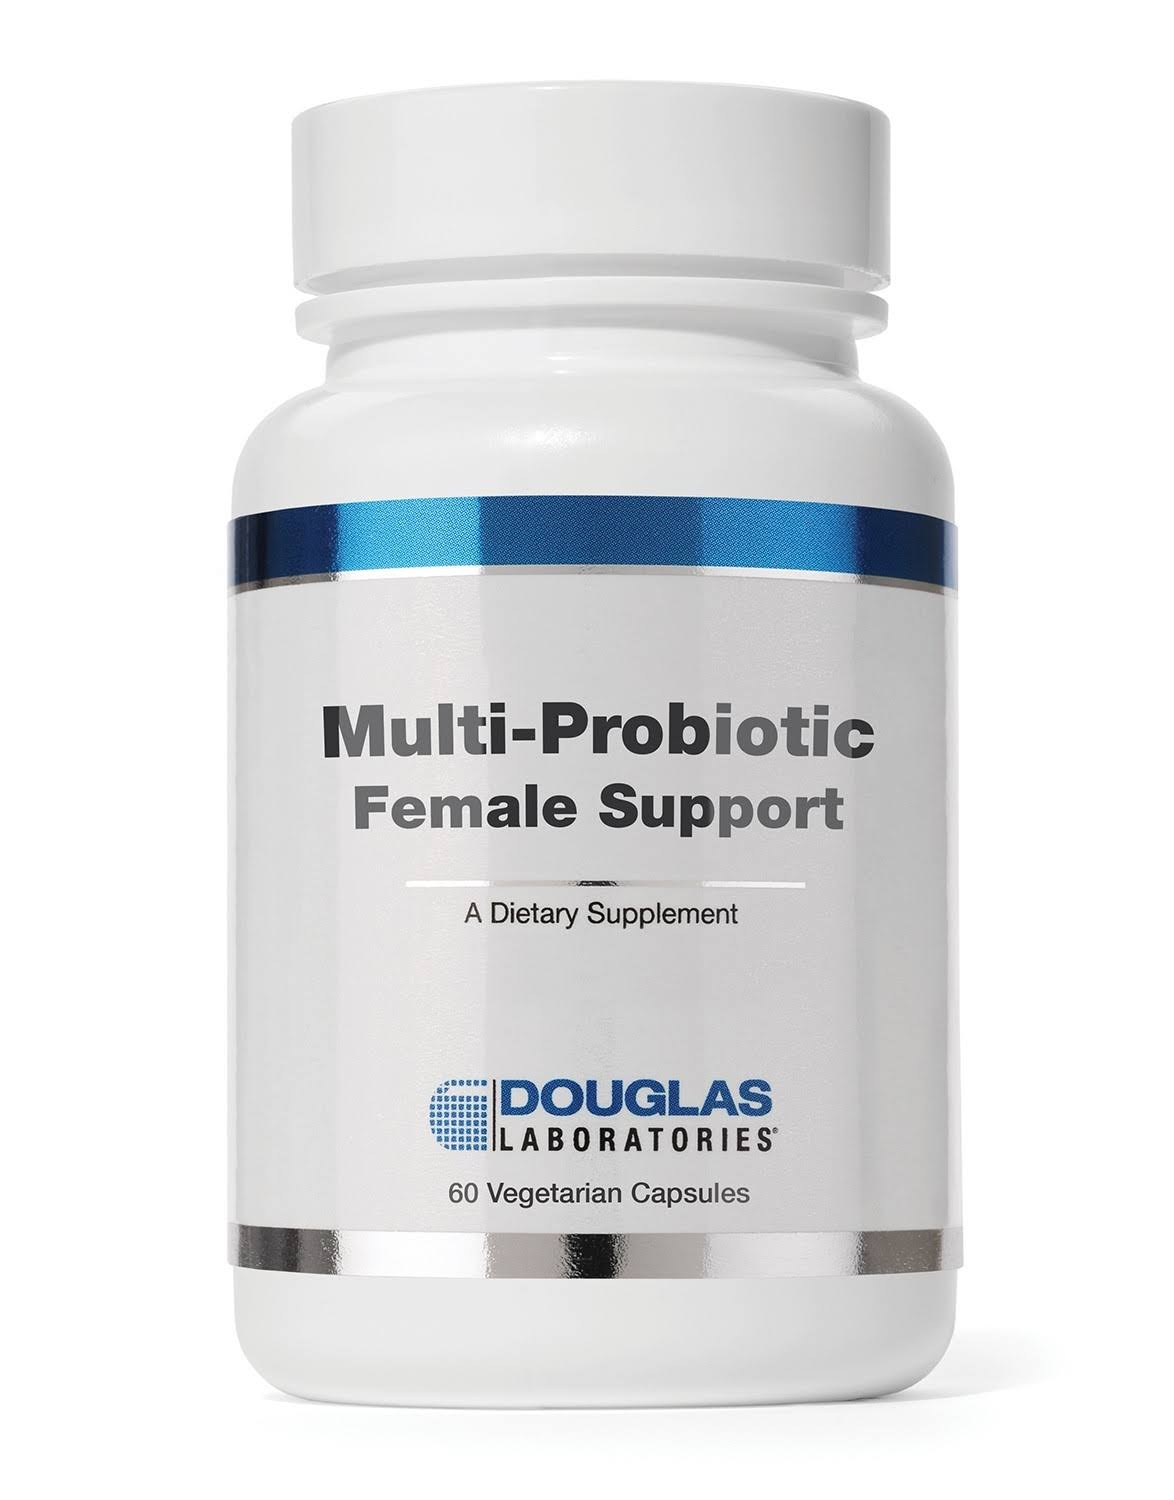 Douglas Laboratories Multi-Probiotic YC-7 Dietary Supplement - 60ct